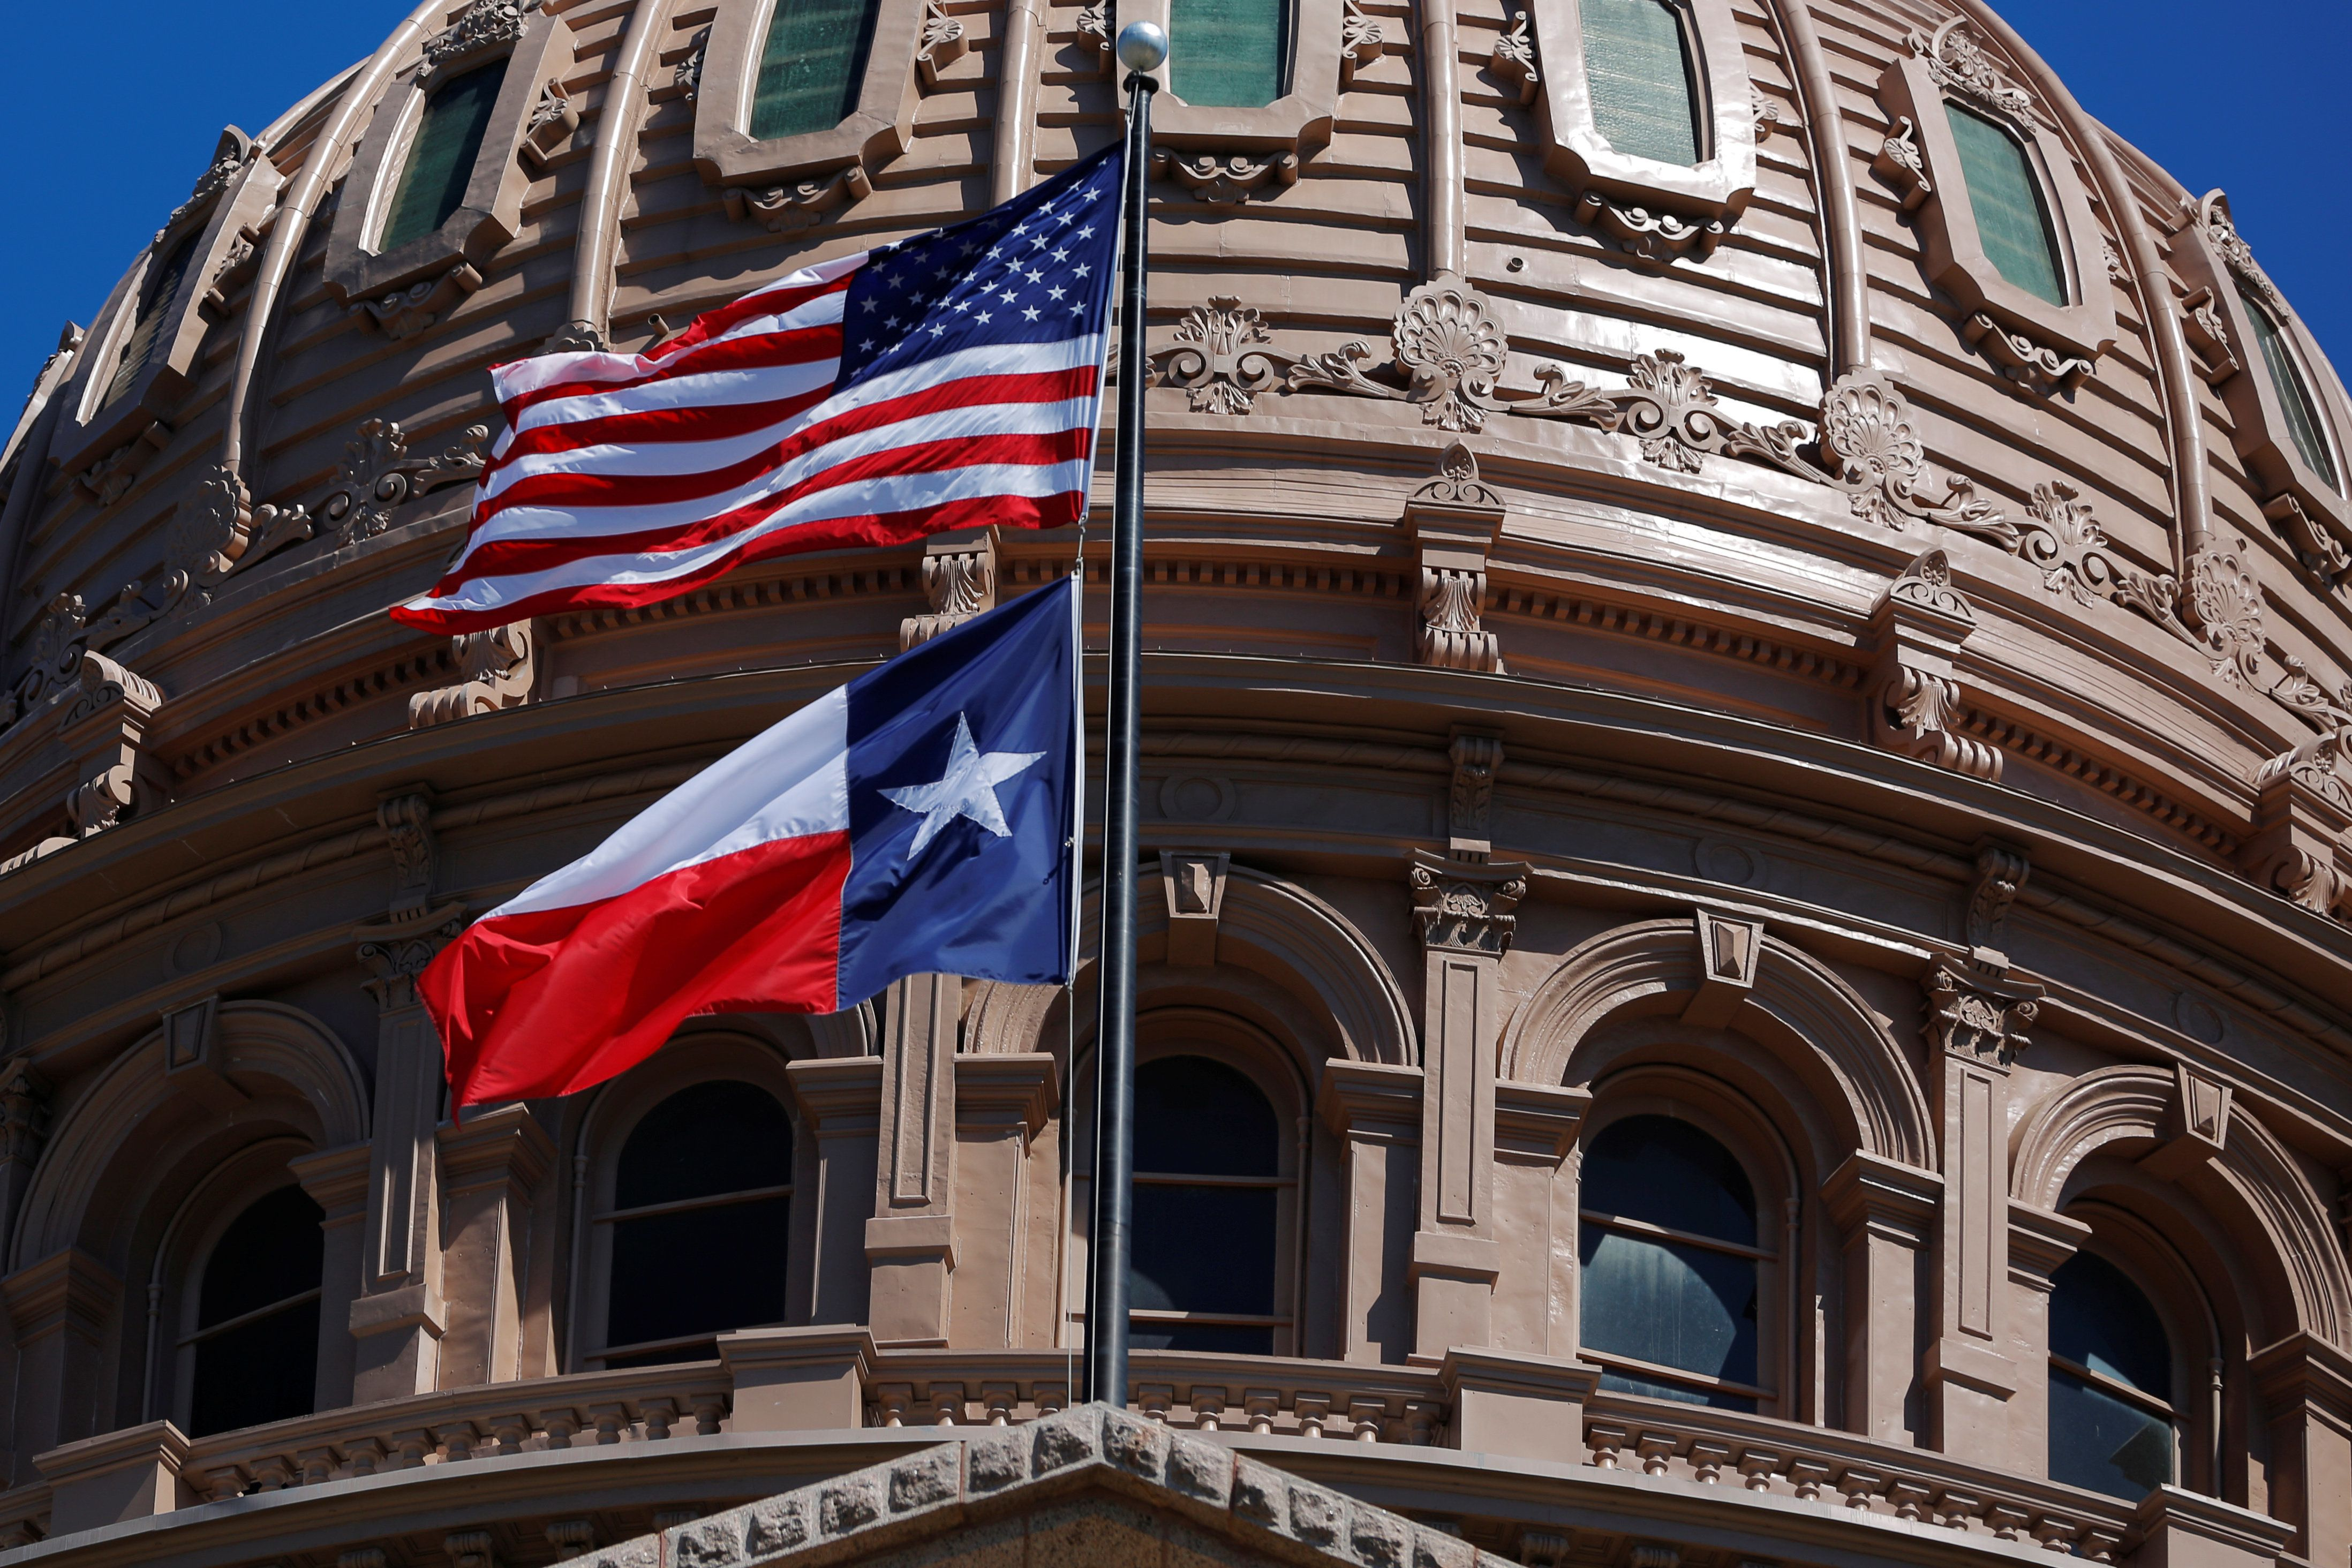 The U.S flag and the Texas State flag fly over the Texas State Capitol as the state senate debates the #SB6 bathroom bill in Austin, Texas, U.S., March 14, 2017. REUTERS/Brian Snyder